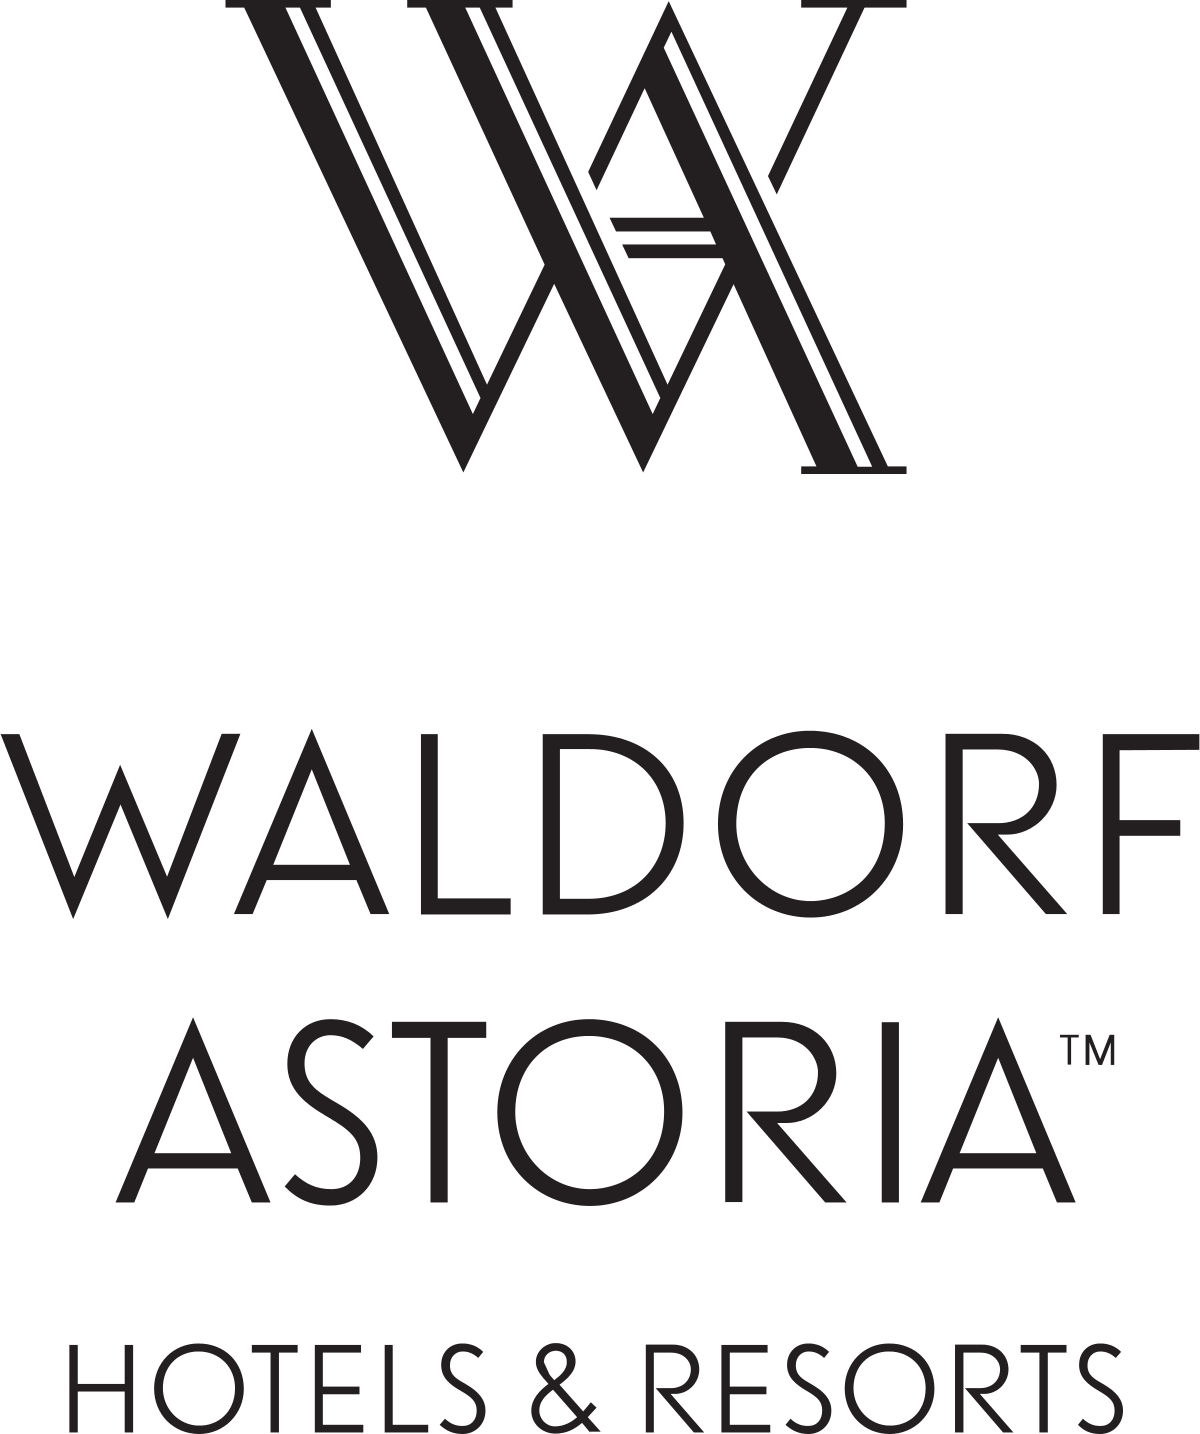 Waldorf Astoria Logo photo - 1